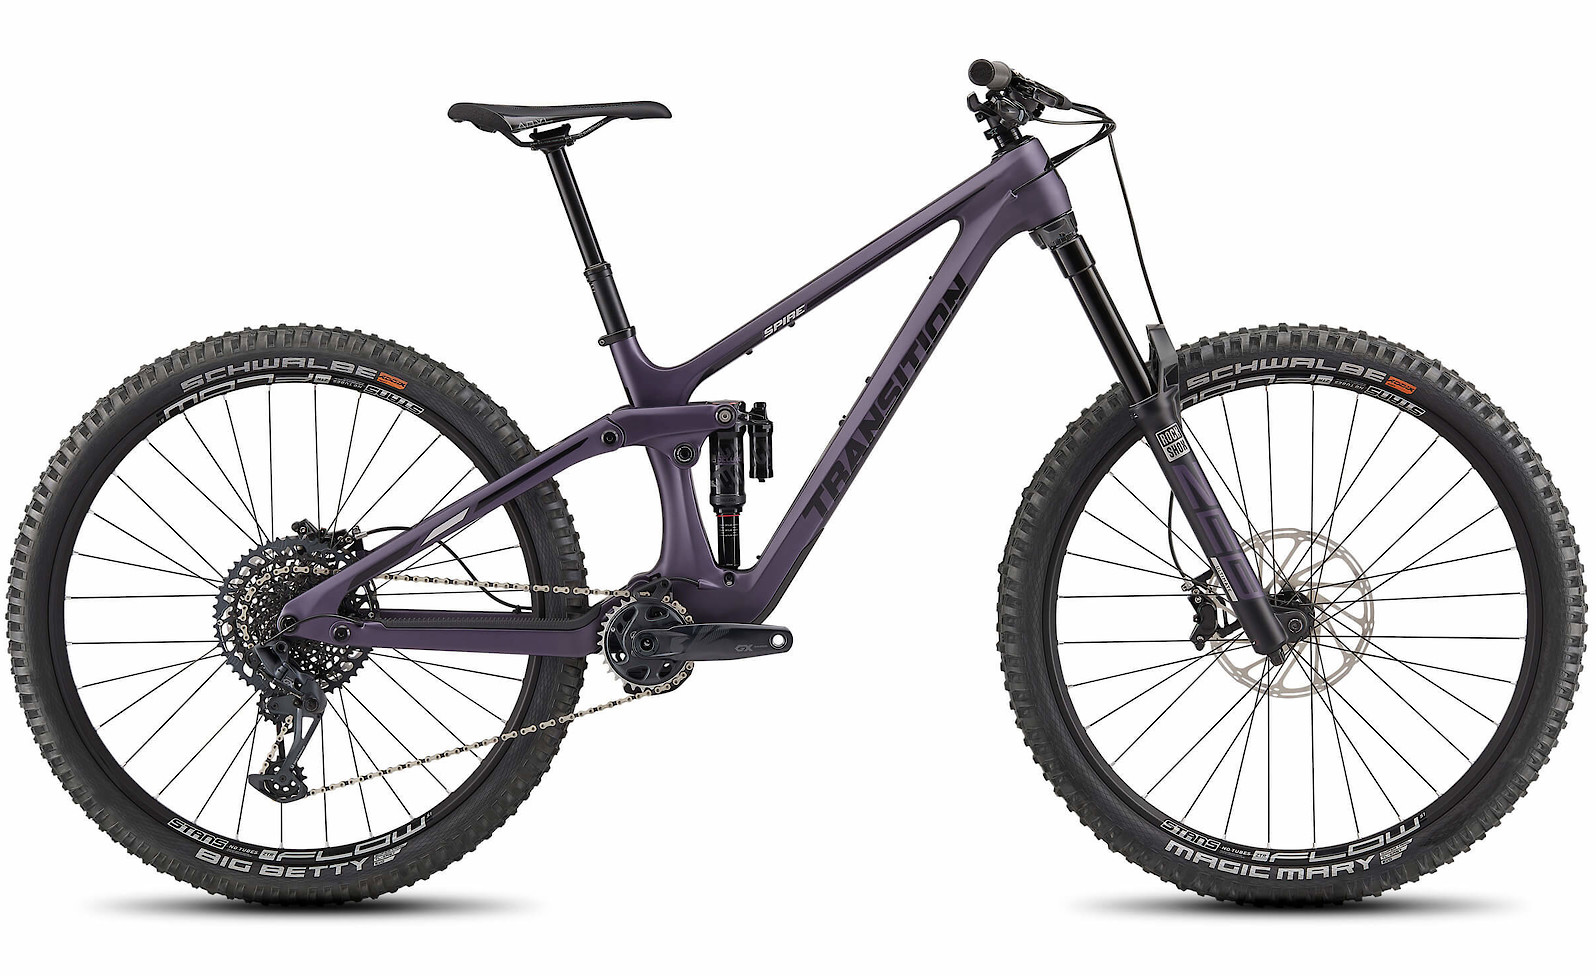 2021 Transition Spire Carbon with GX build (Huckleberry)